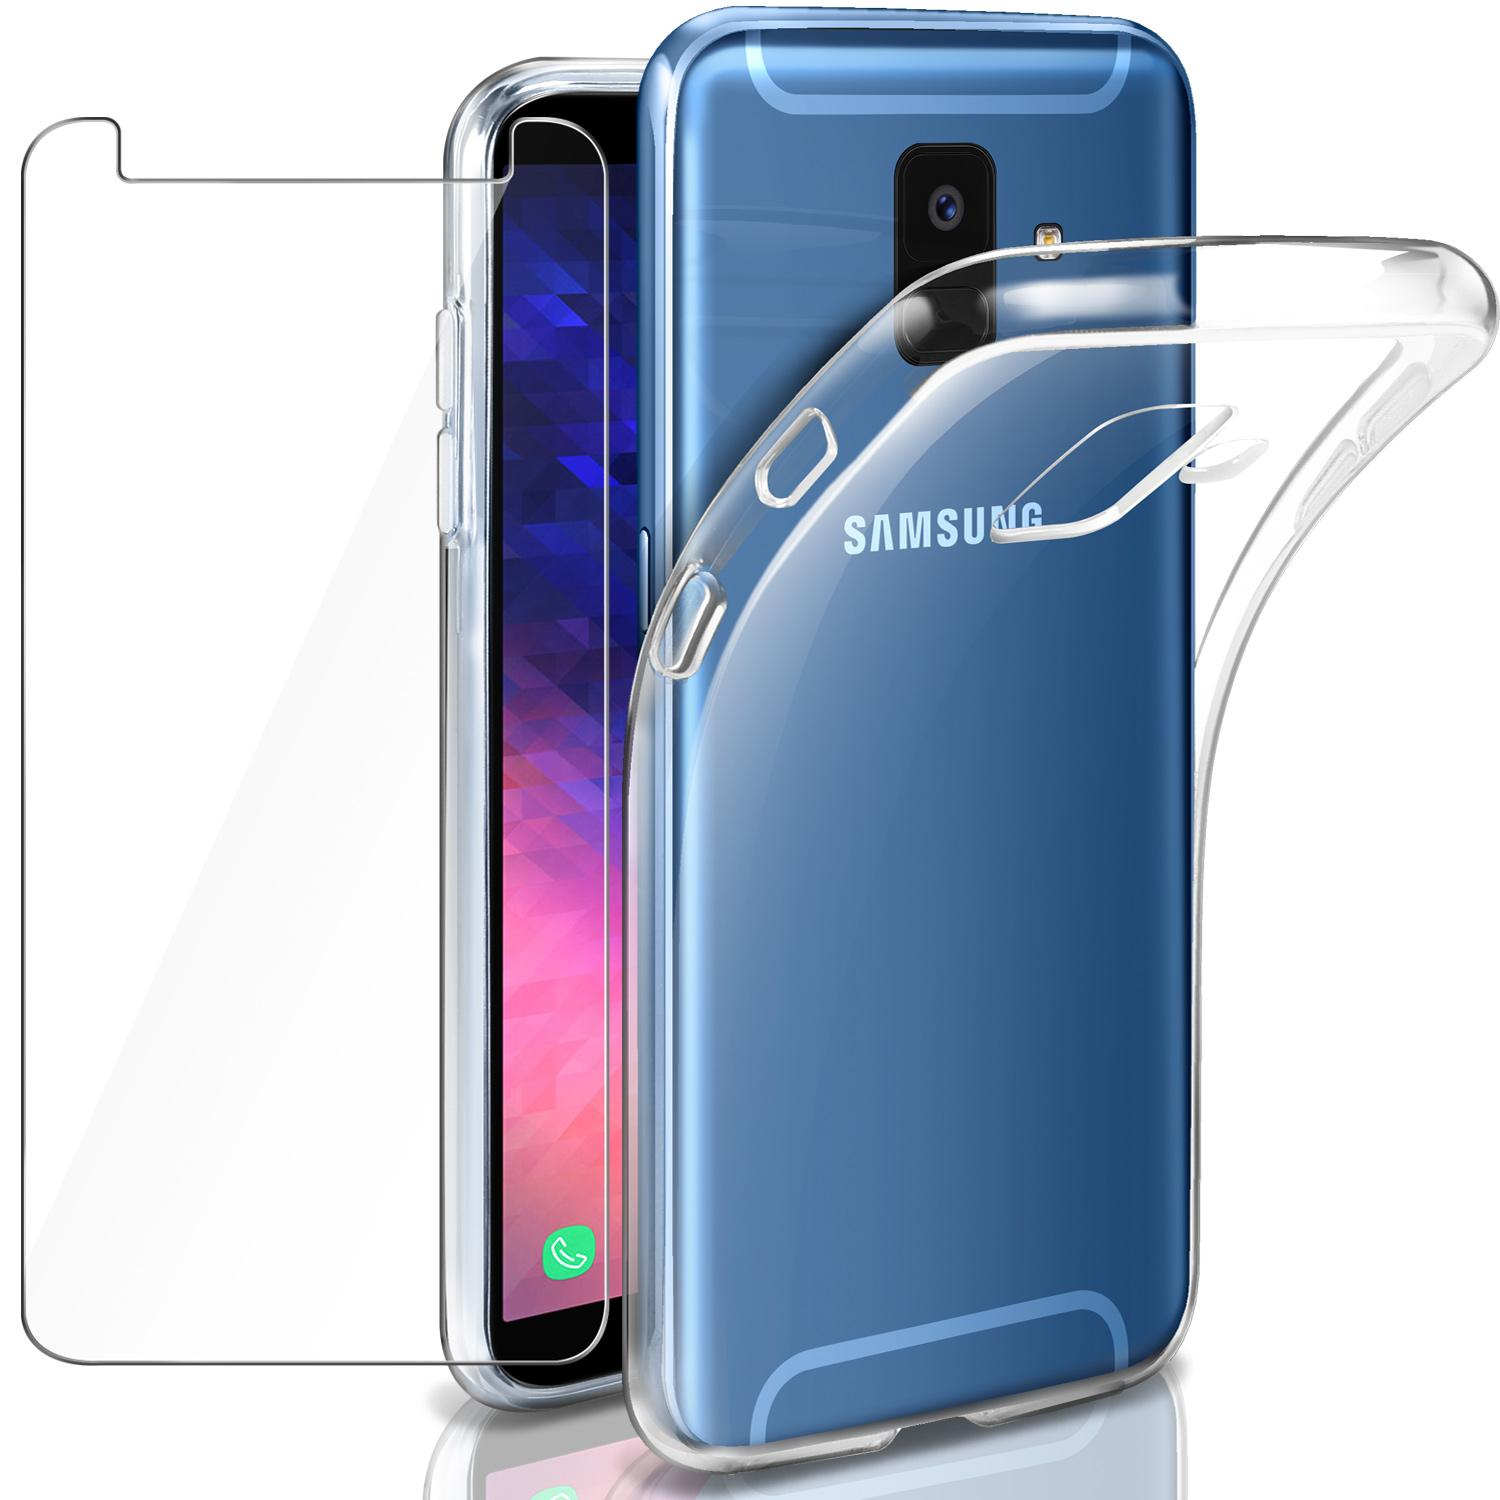 Buy Sell Cheapest Screen Glass Film Best Quality Product Deals Nintendo Switch Mocolo Original 9h Premium Tempered Rymall For Samsung Galaxy A6 2018 Case Shockproof Casing Ultra Slim Clear Soft Tpu Flexible Silicone